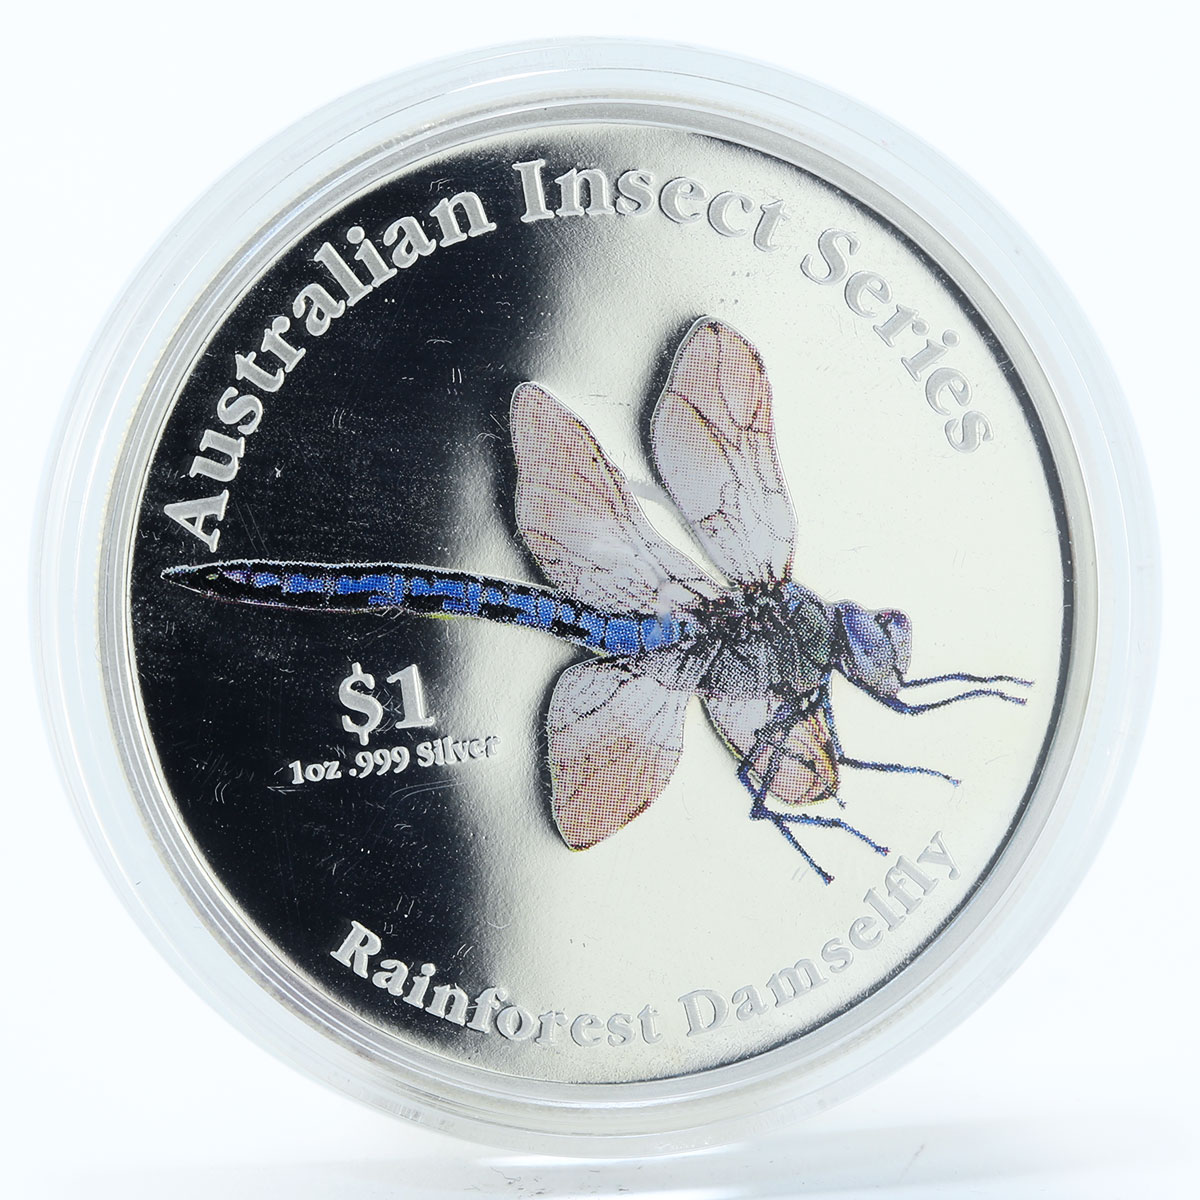 Cook Islands 1 dollar Rainforest Damselfly proof silver coin 2000